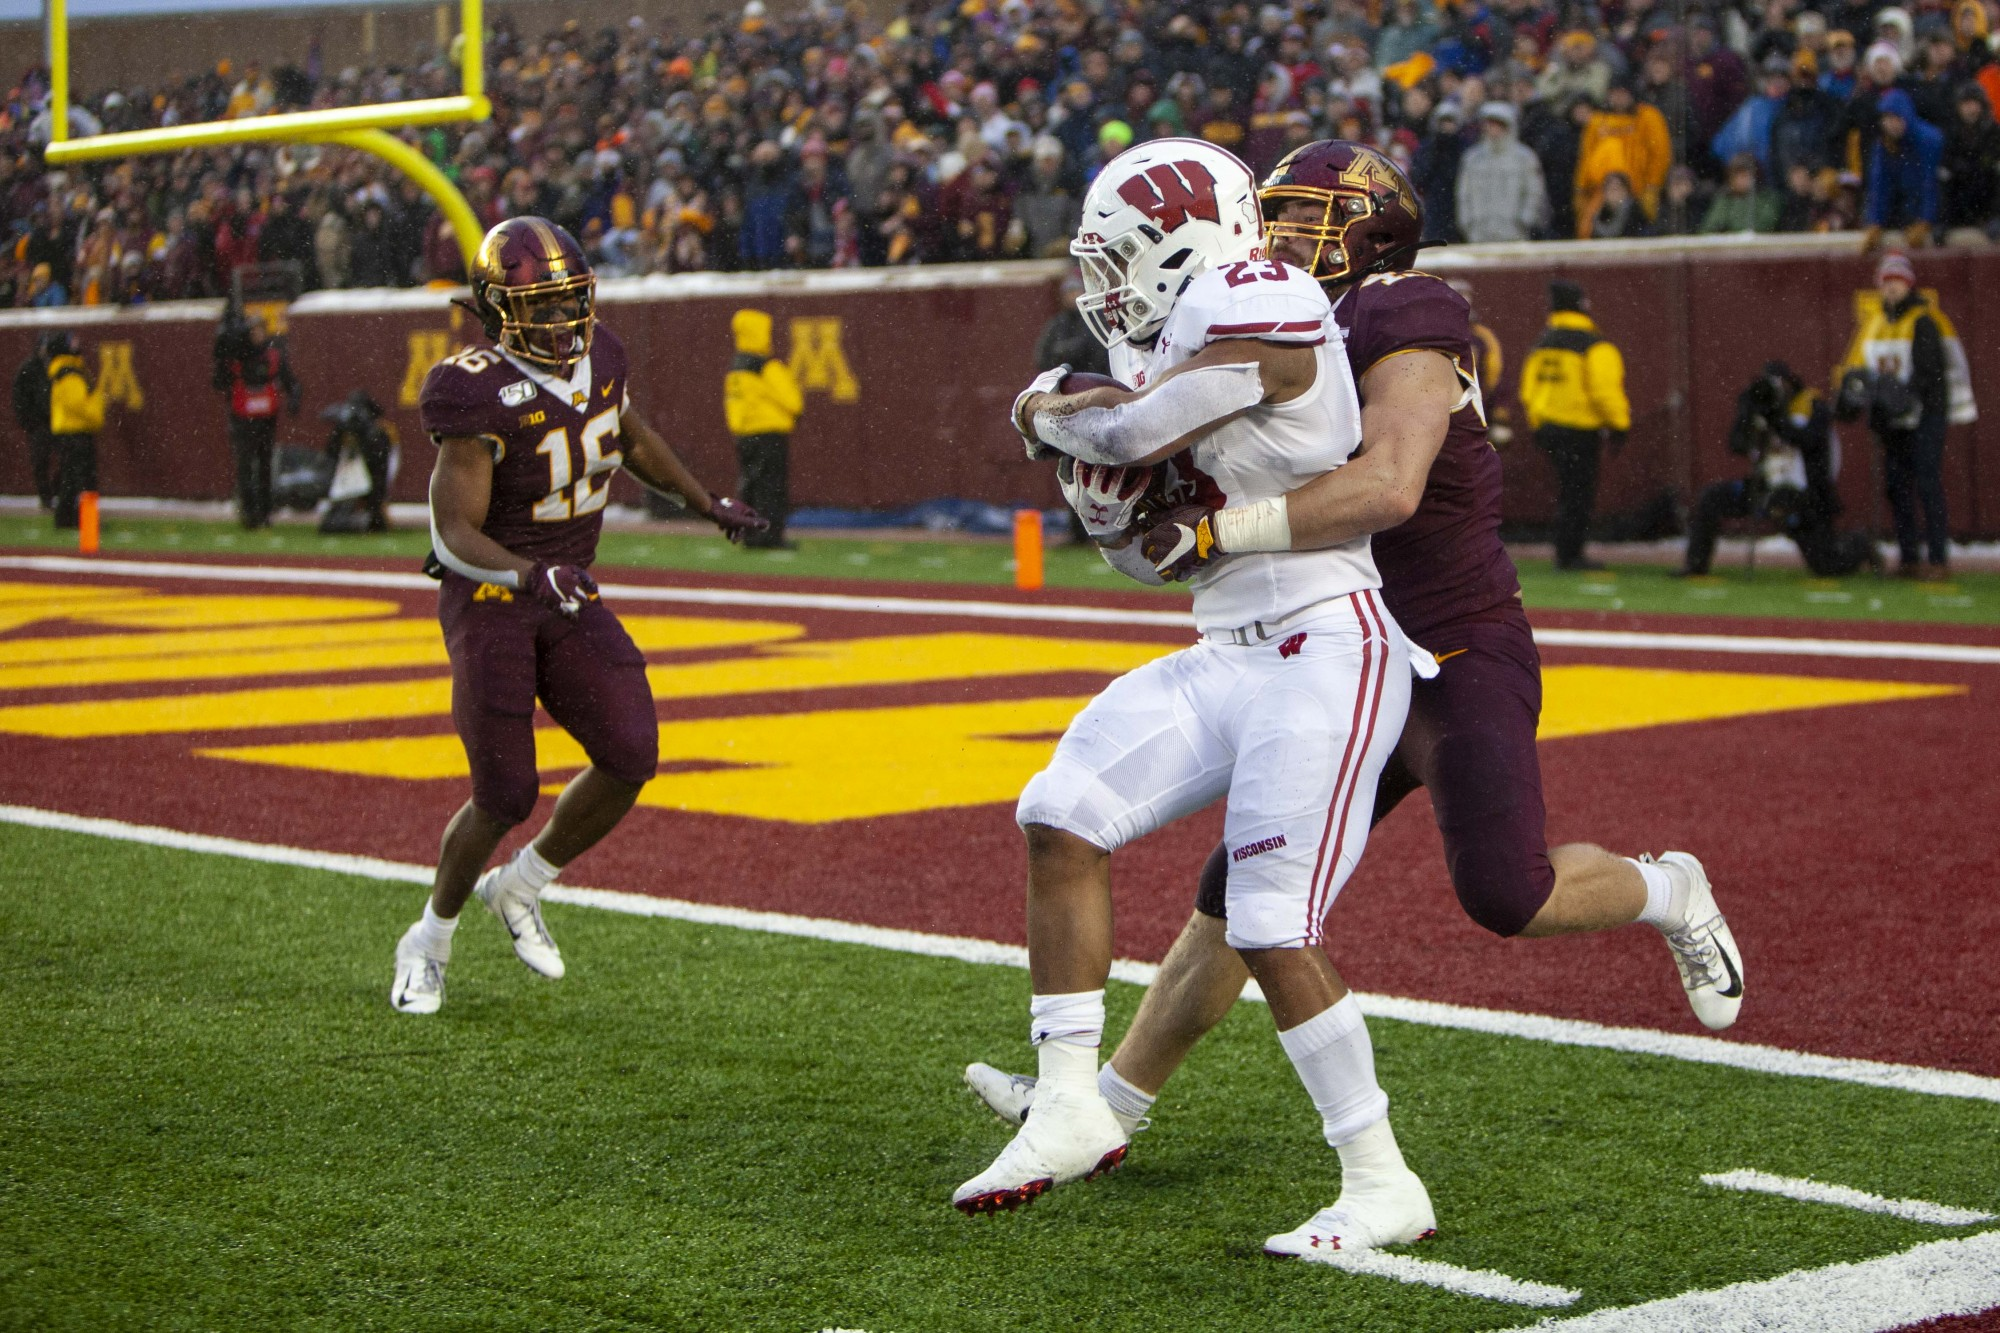 Wisconsin scores a touchdown late in the second quarter at TCF Bank Stadium Saturday, Nov. 30.